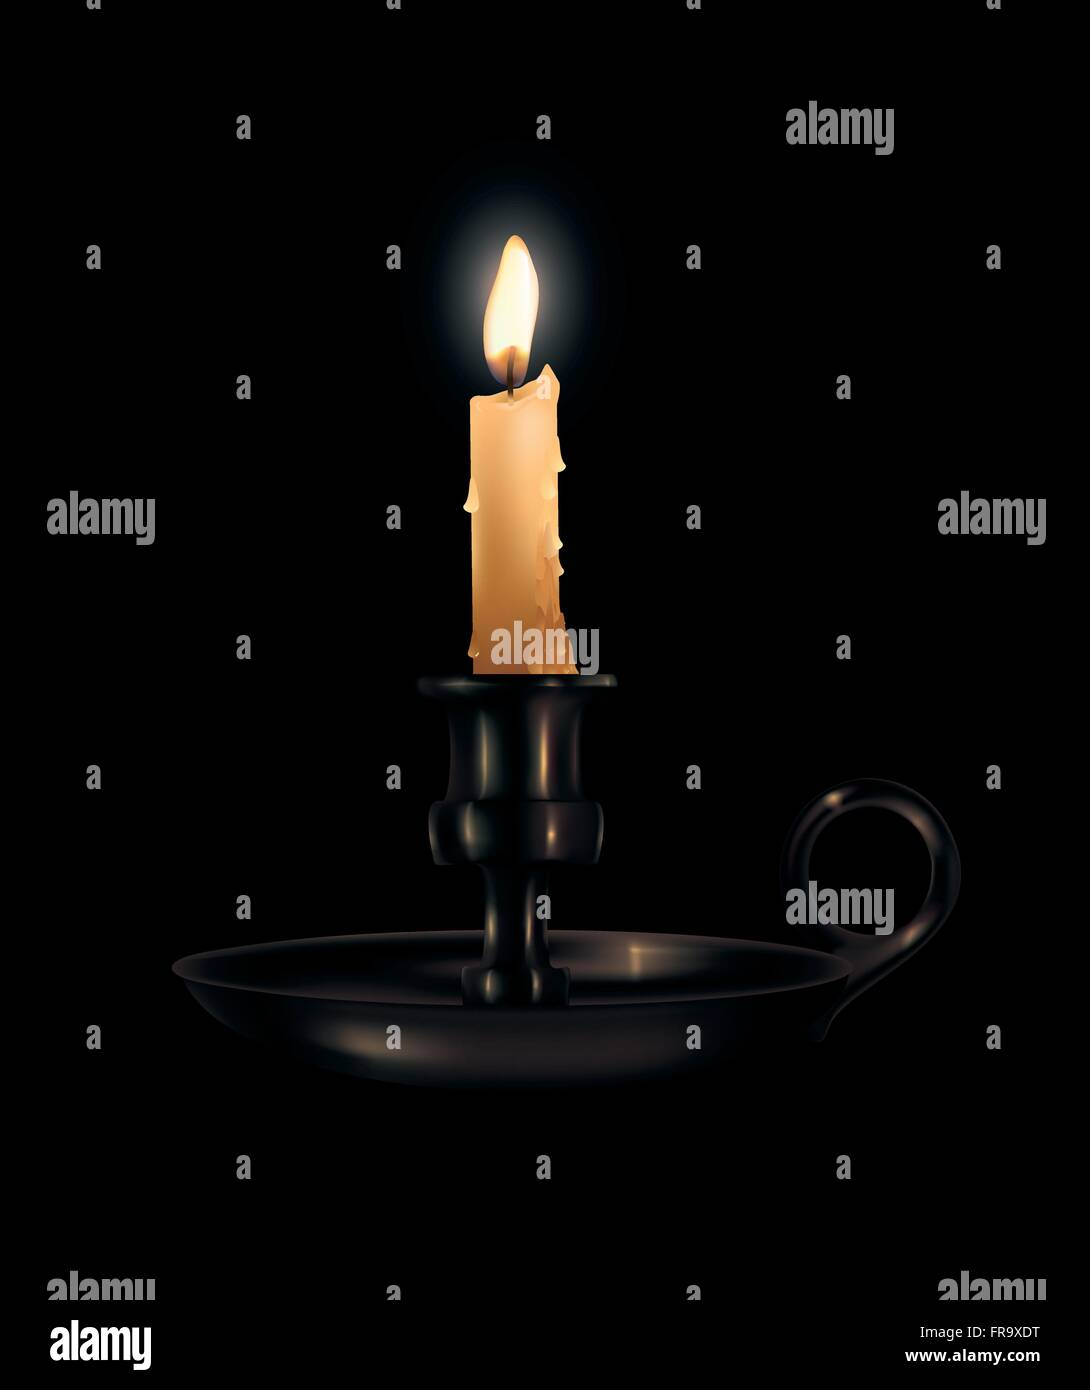 Light,Burning,Candle,Flame,Dark - Stock Vector